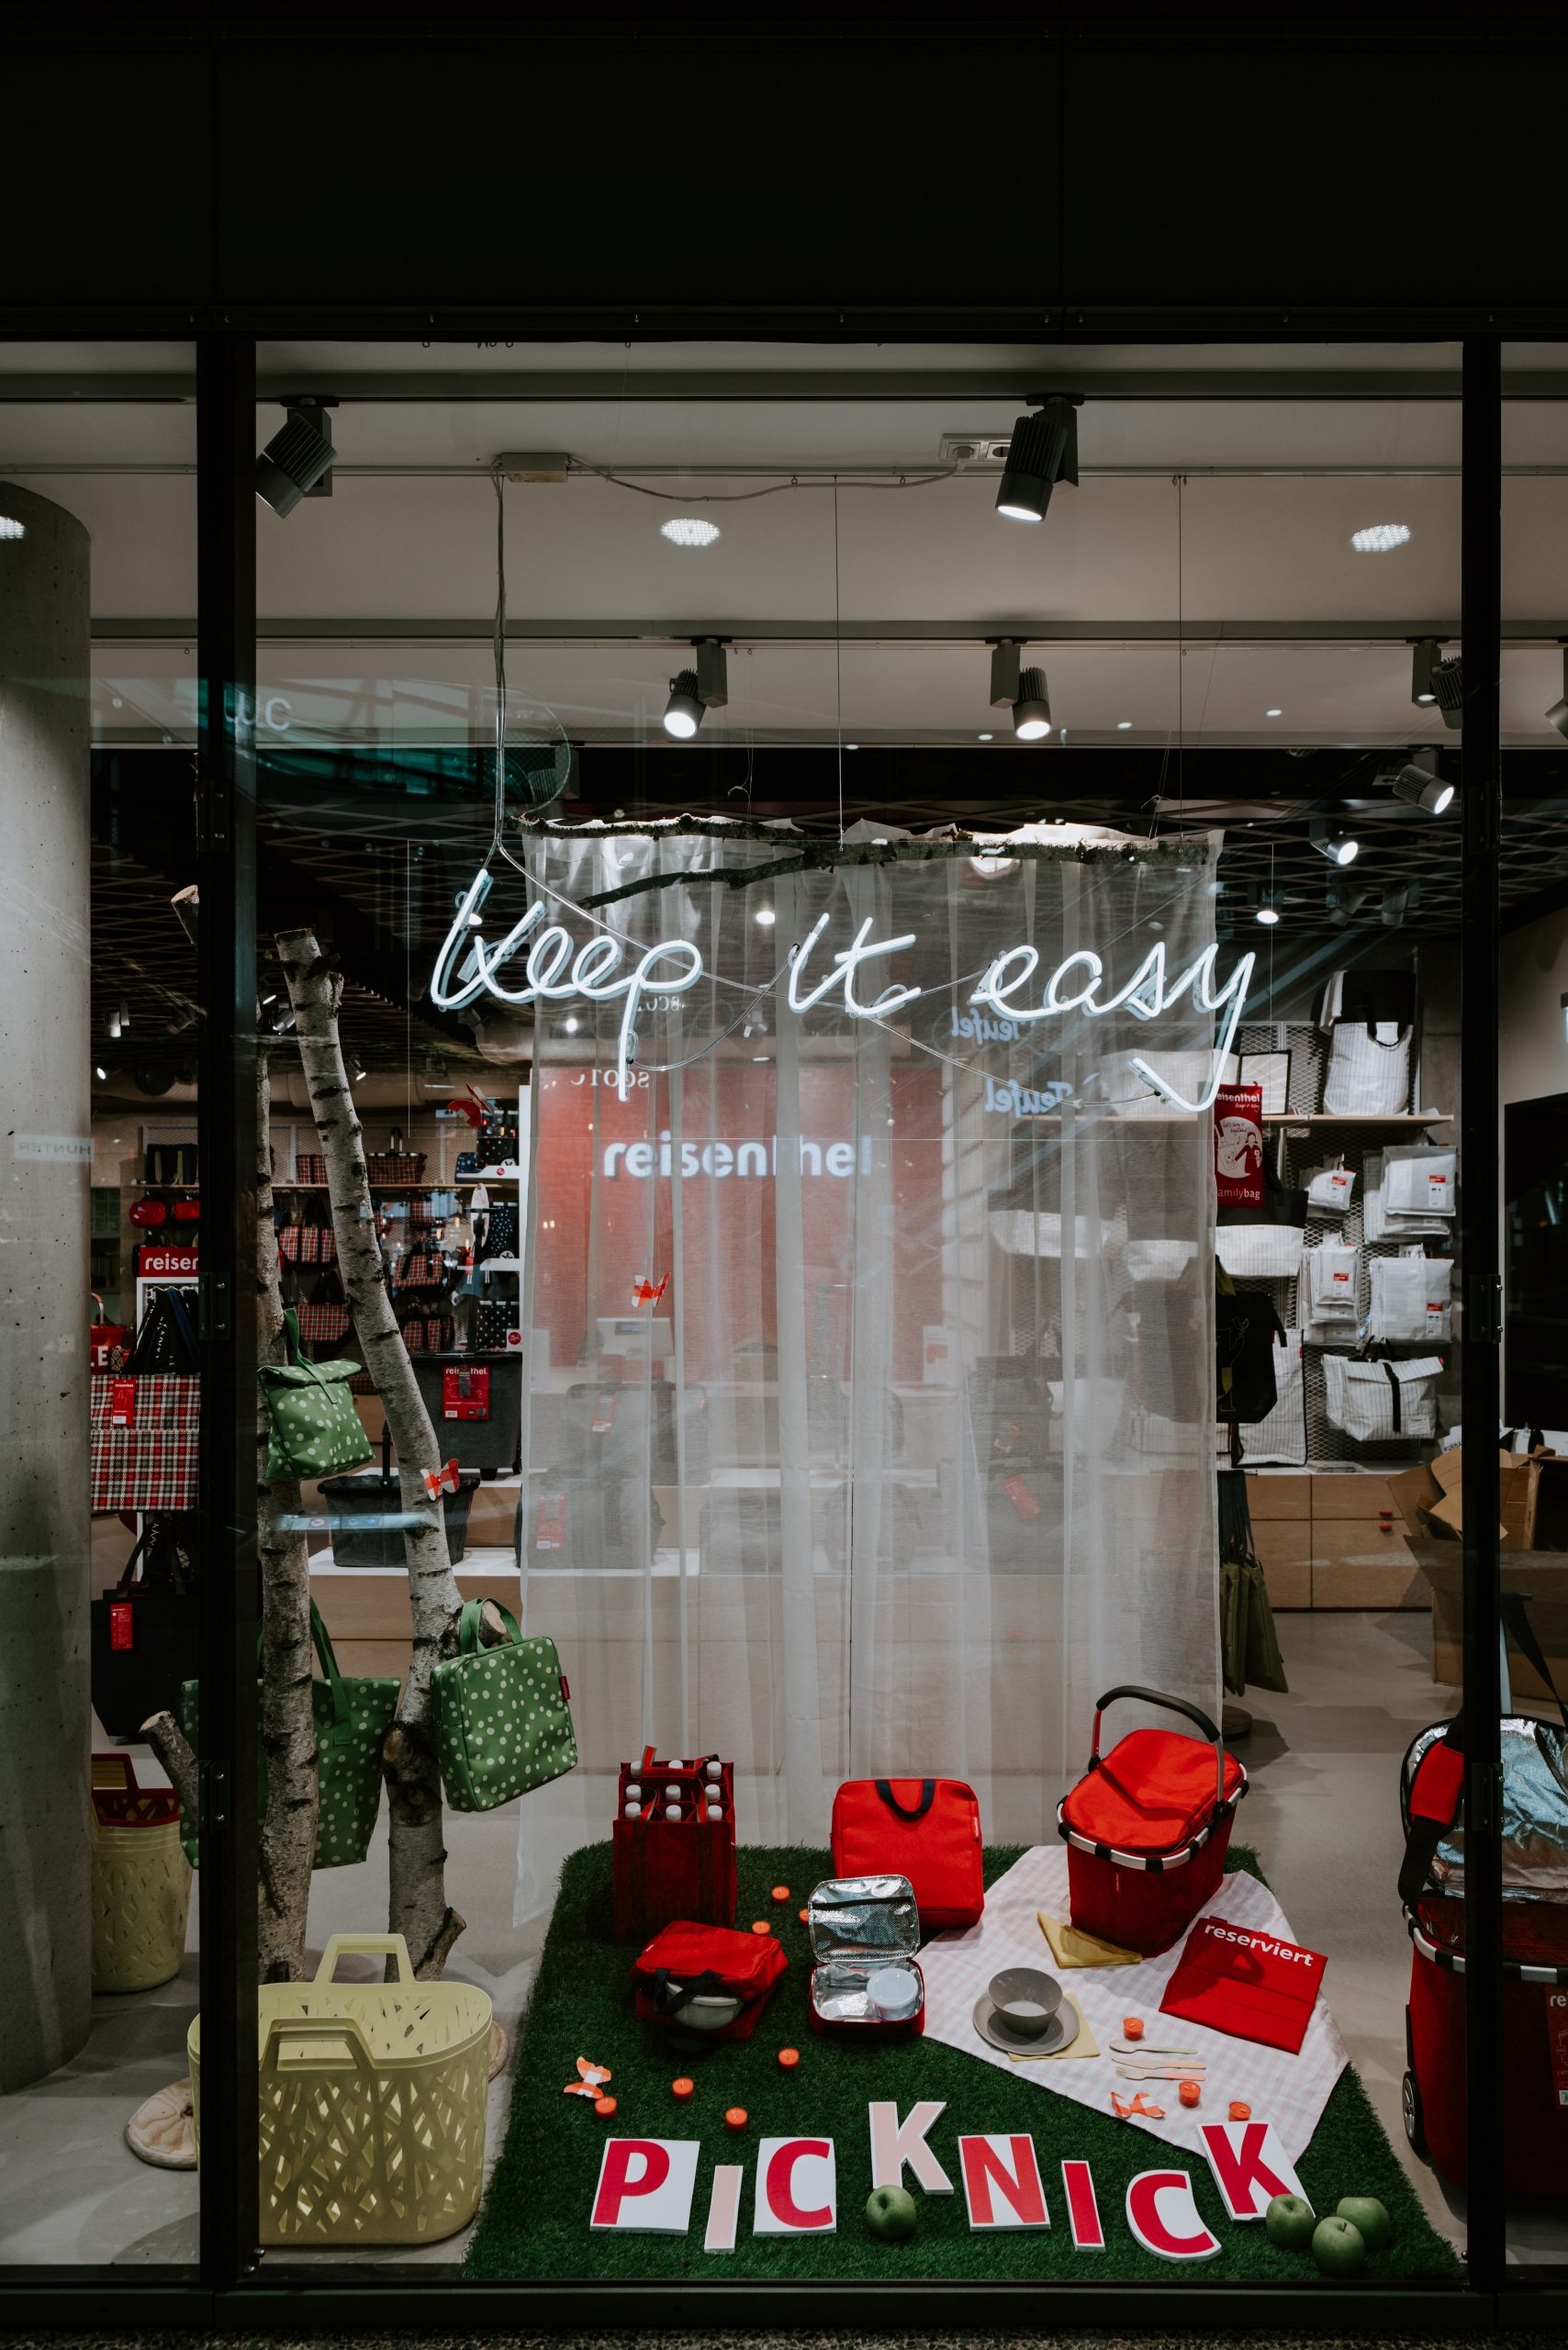 Shop front window - keep it easy